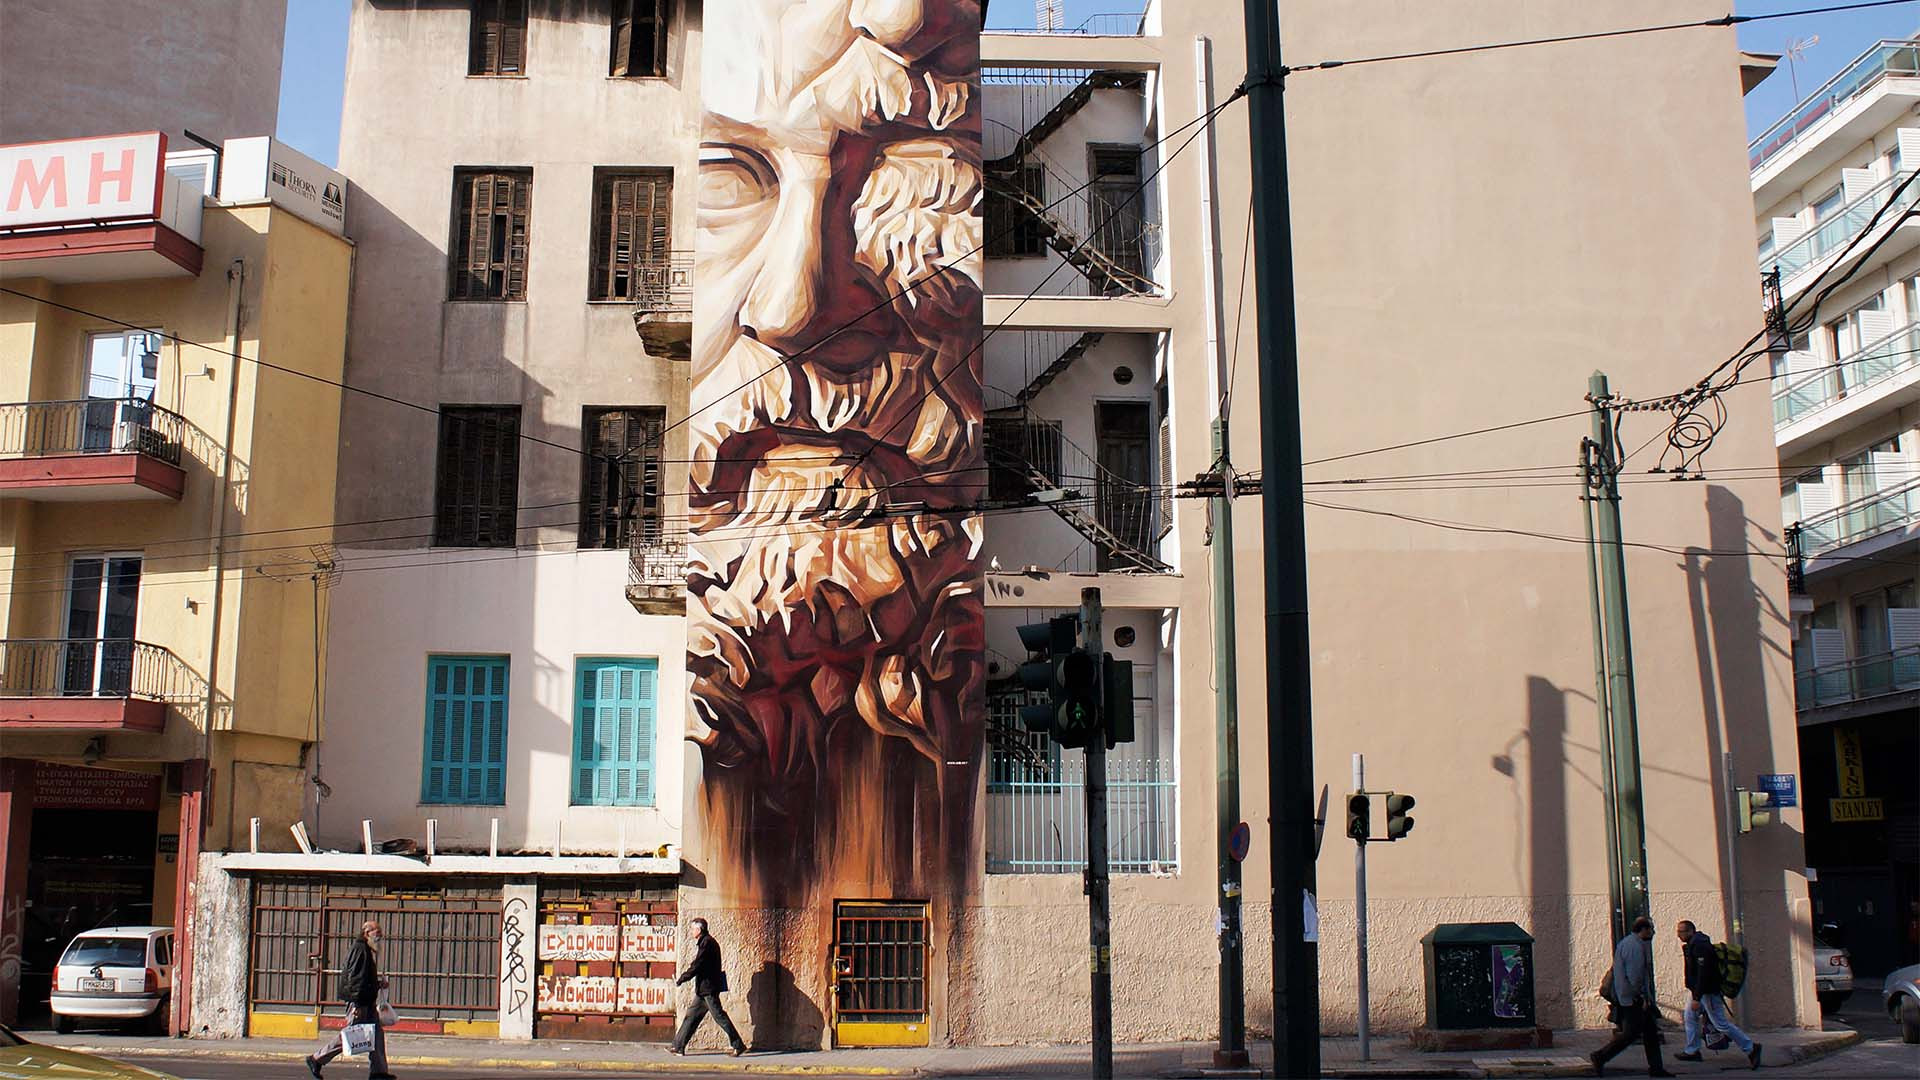 Graffiti in the streets of Athens, Greece